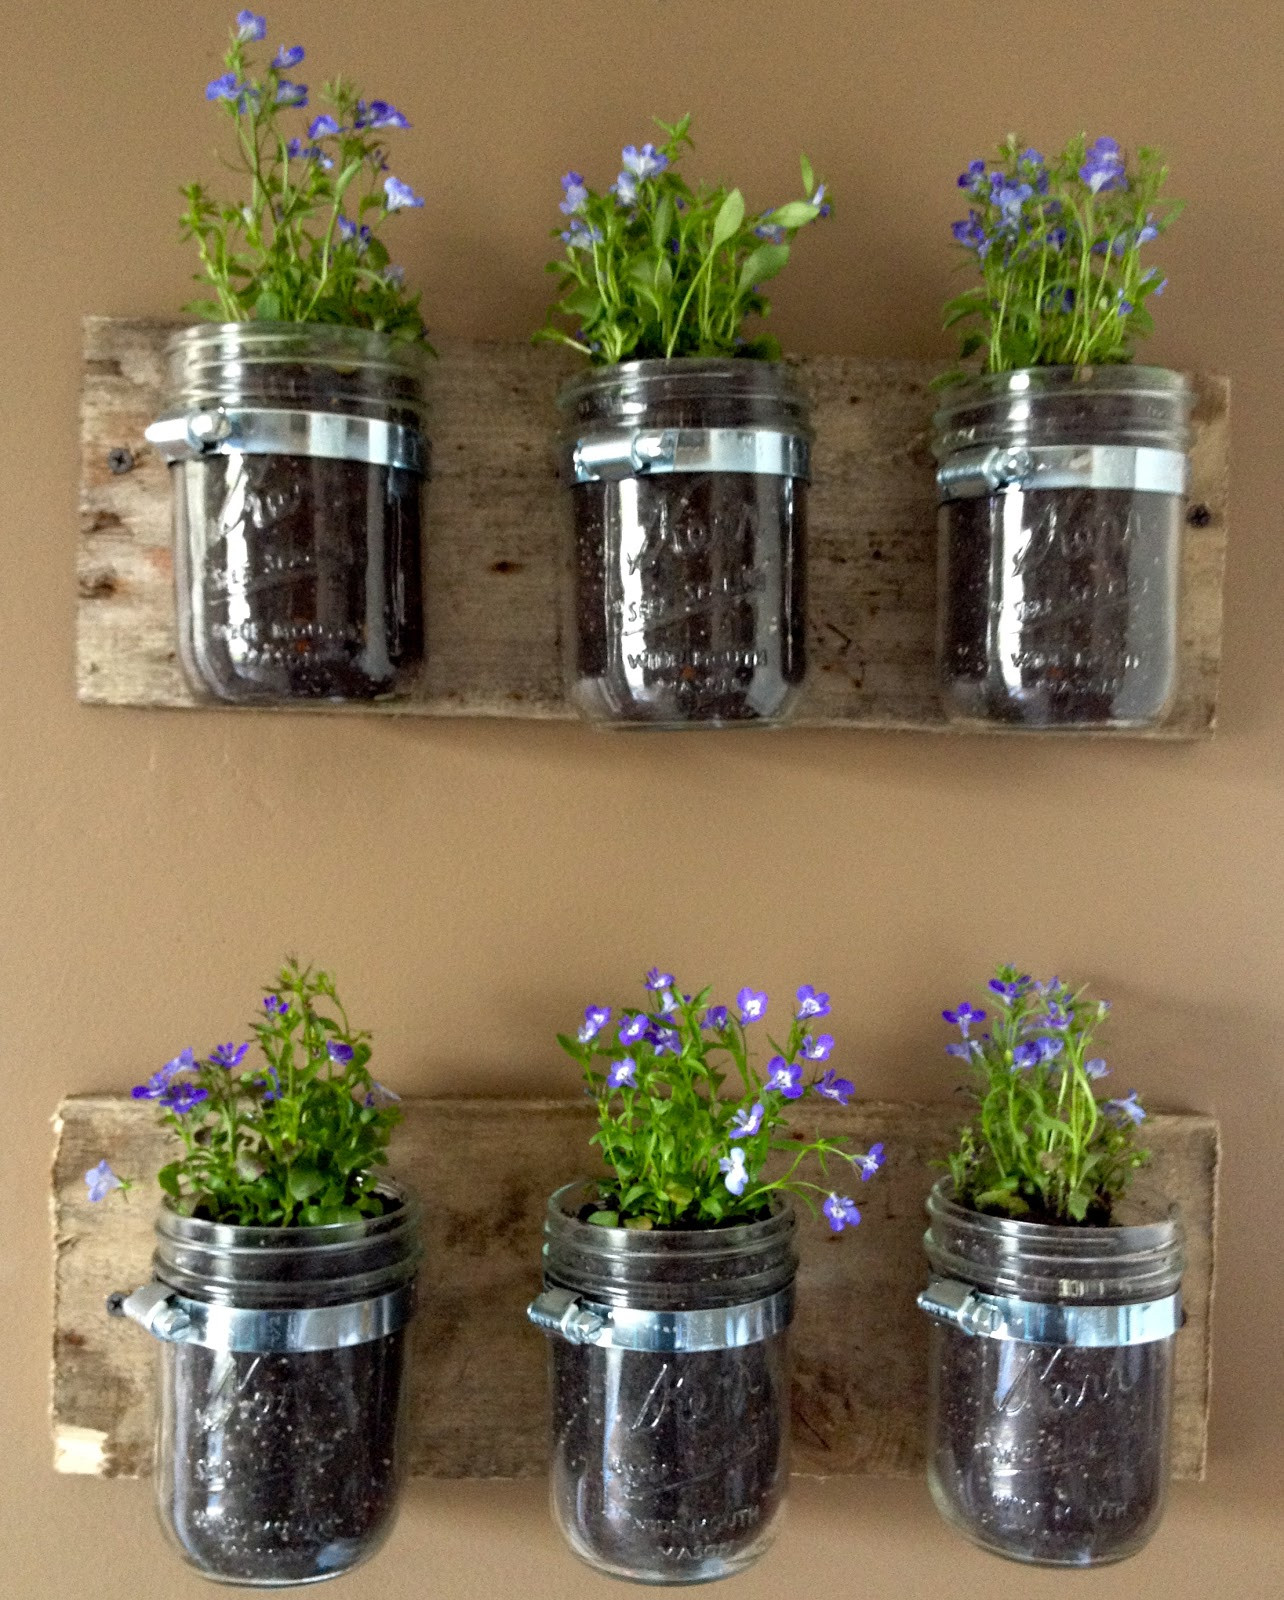 Best ideas about DIY Wall Planter . Save or Pin DIY Hanging Wall Planters from Mason Jars Now.